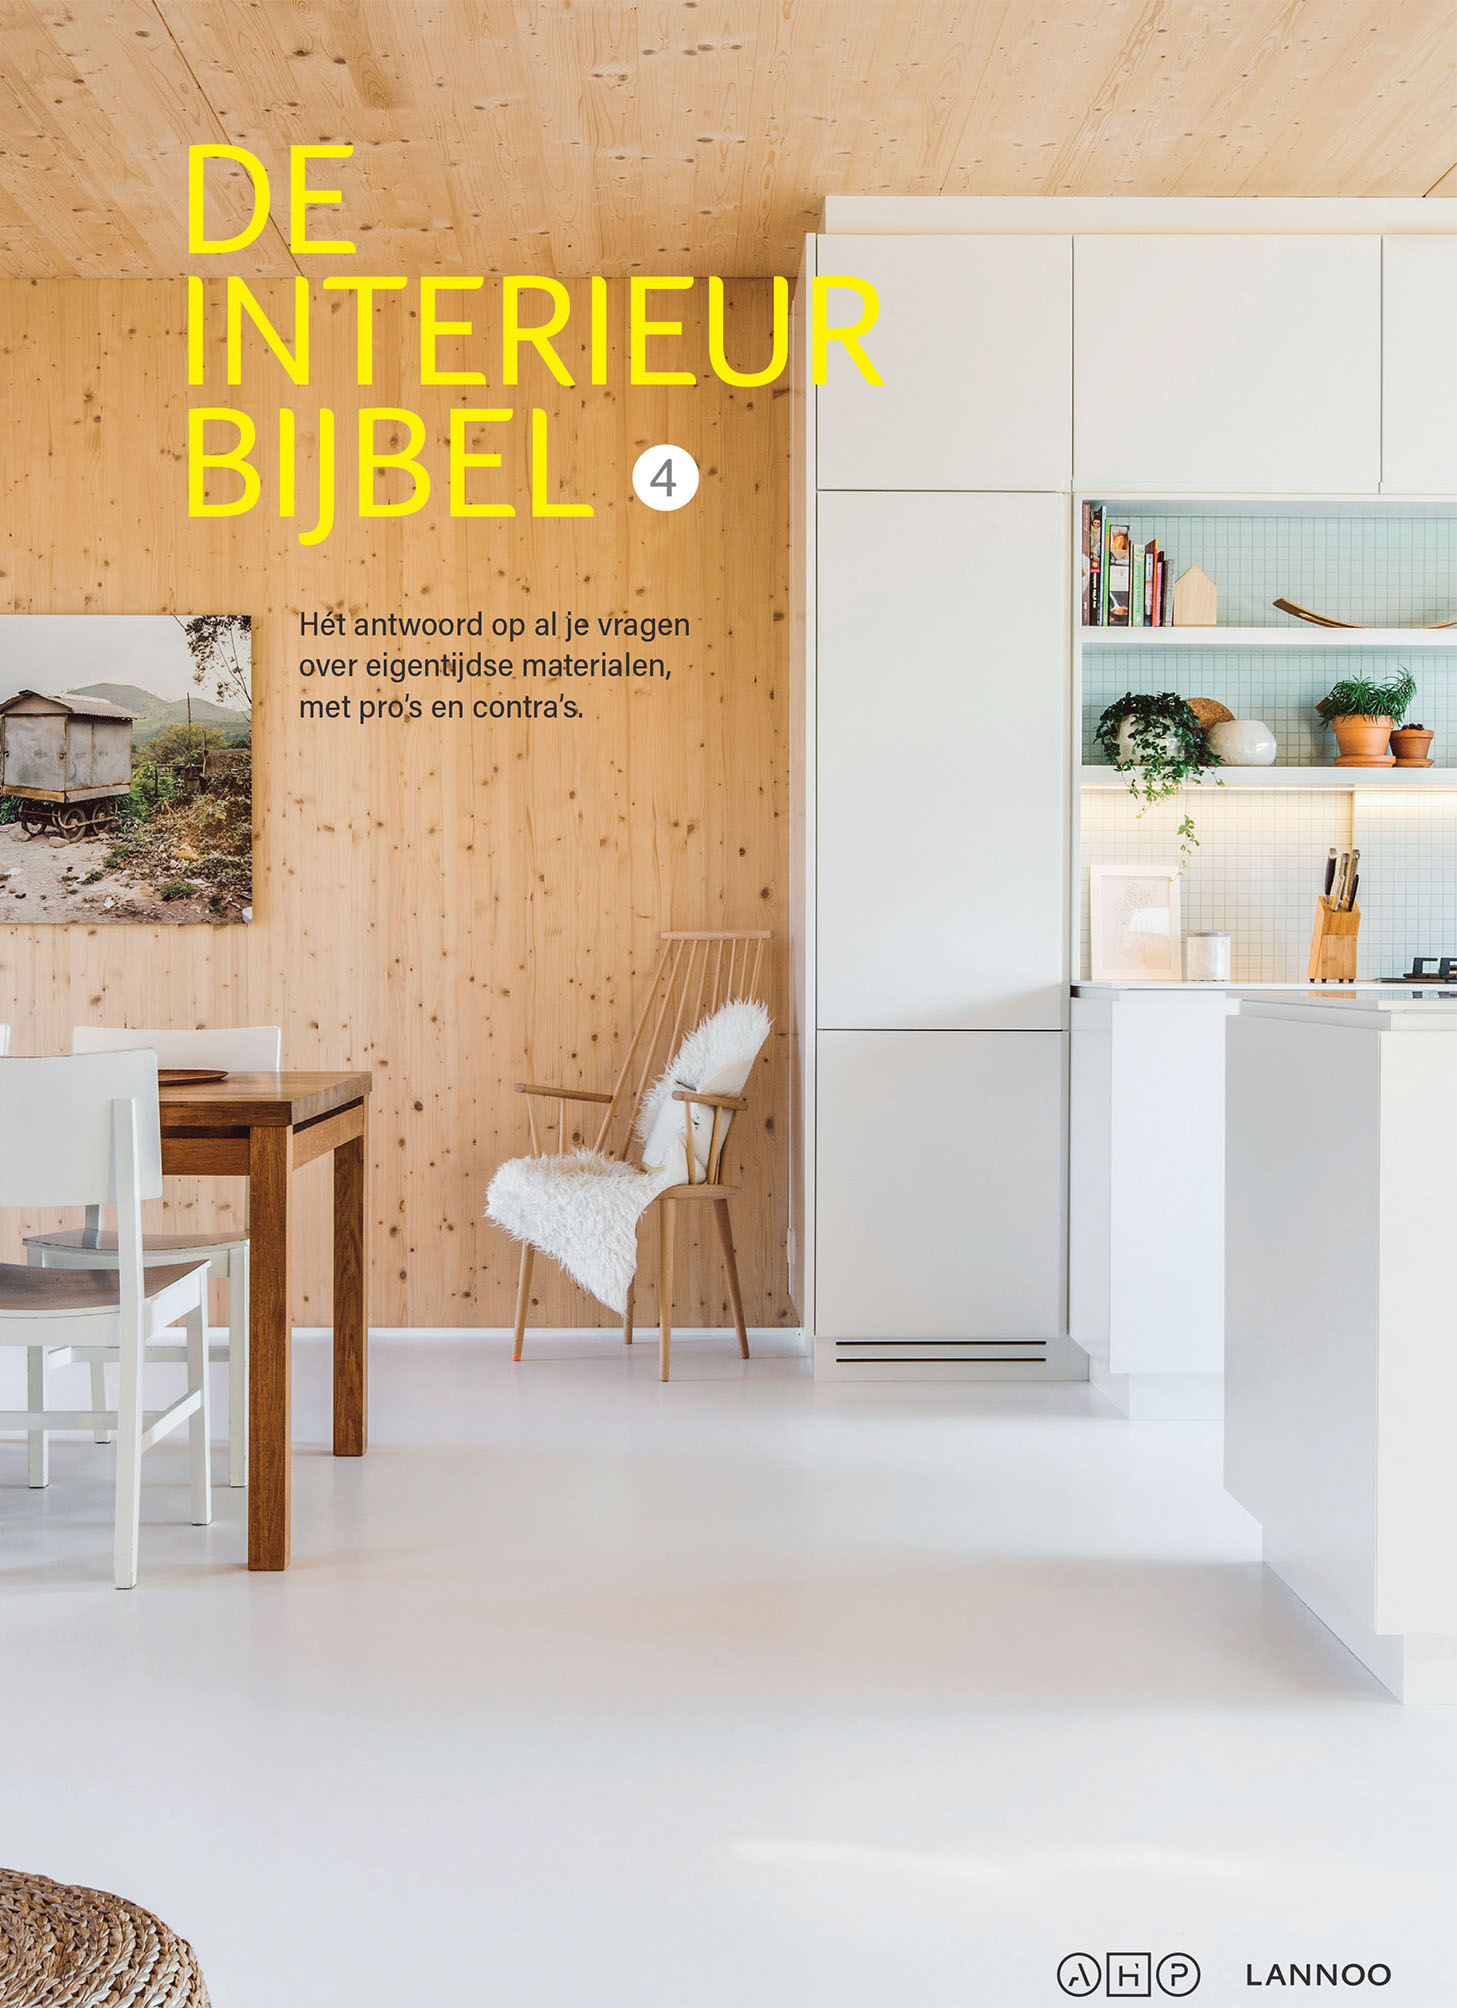 De Interieur Bijbel - 4th edition